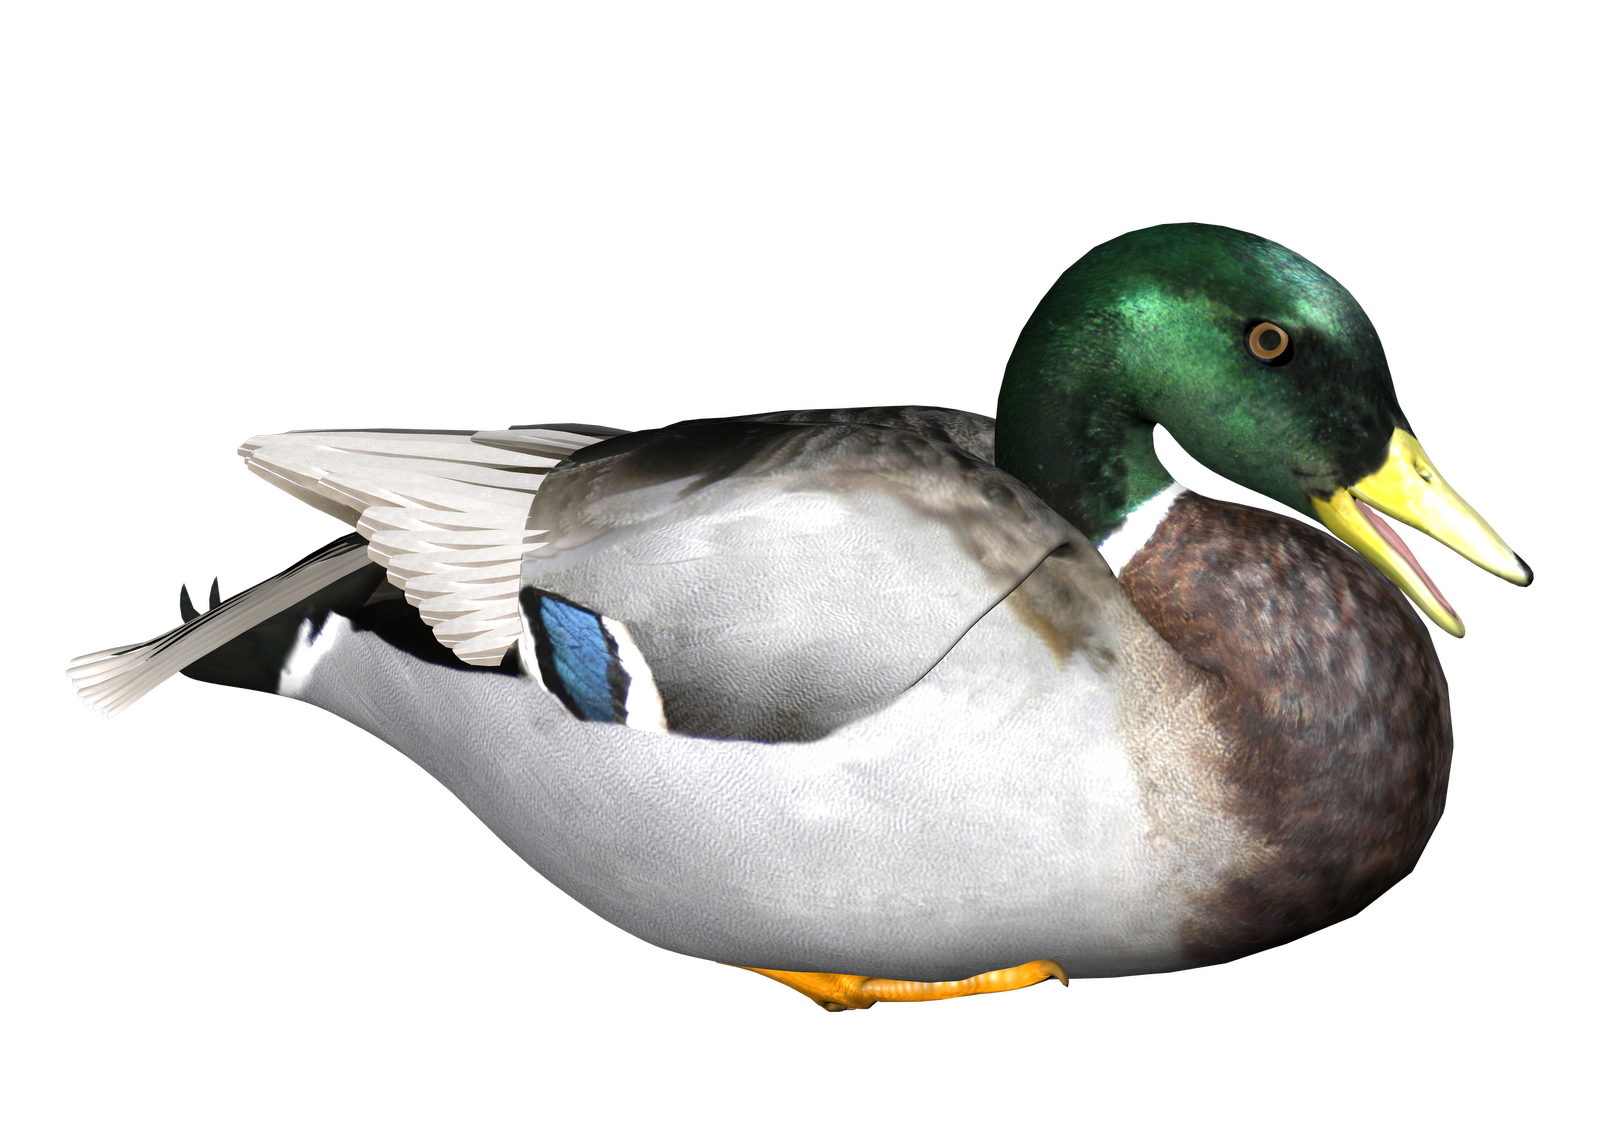 Hd Duck Image In Our System